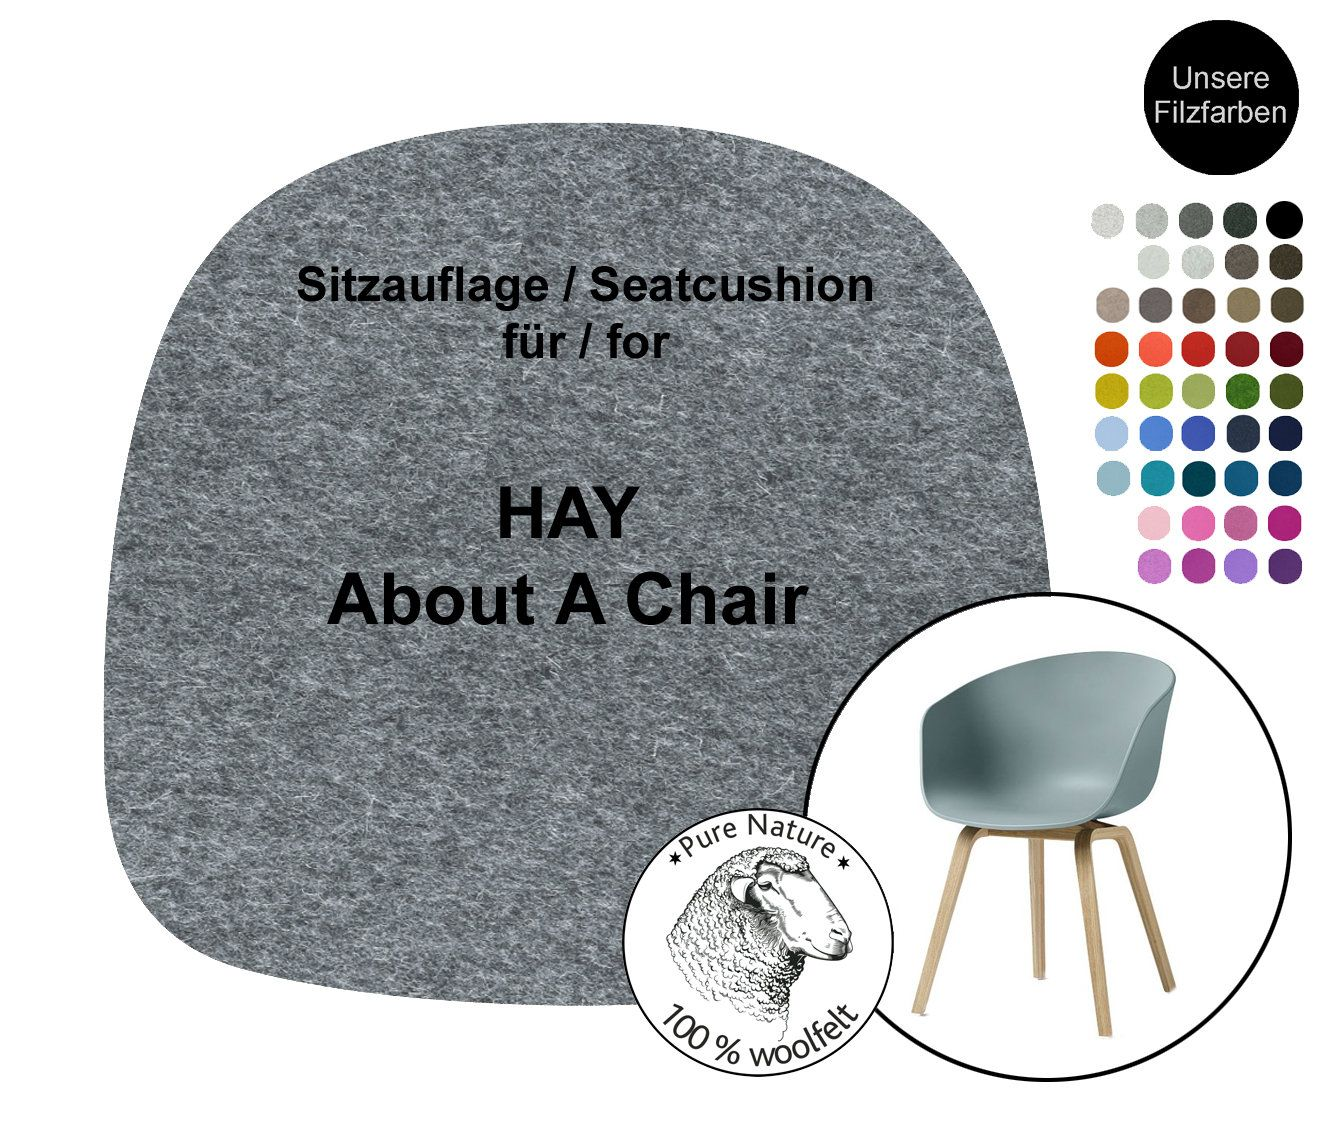 Hay About A Chair Aac 22 Aac22 Mit Armlehne Stuhlauflage Mit Oder Ohne Antirutsch Filz Sitzkissen 100 Wollfilz Stuhlauflage Hay In 2020 Chair Cushions Felt Cushion Wool Felt